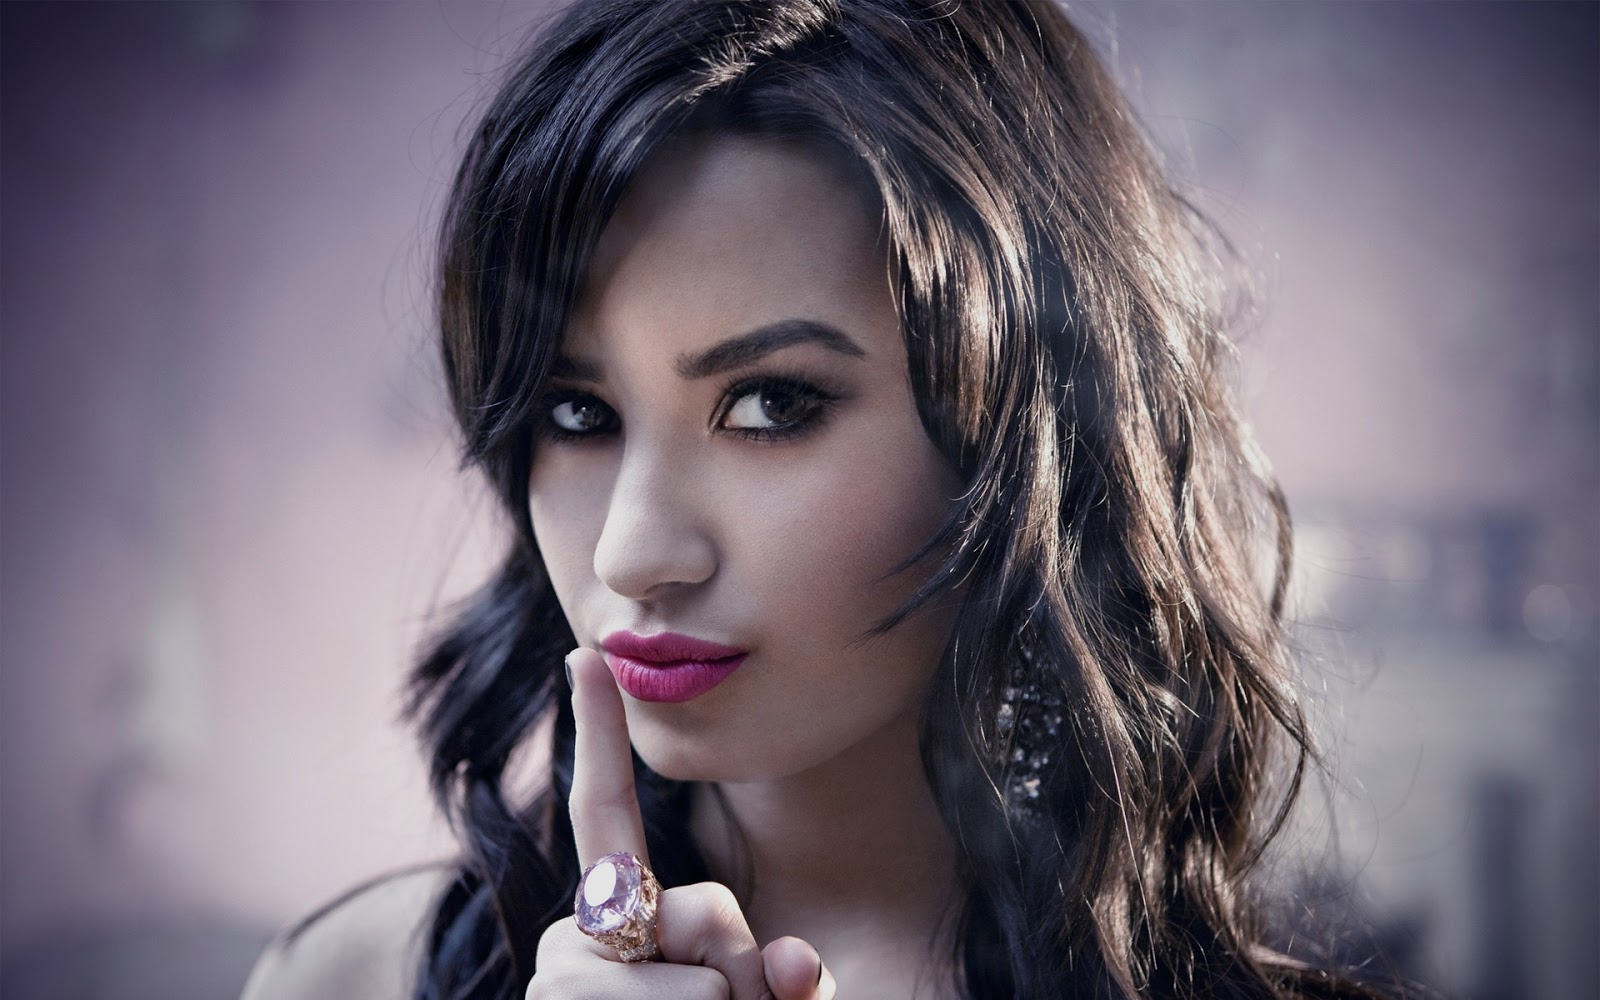 Actress HD Wallpapers Hollywood Actress HD Wallpapers Demi Lovato 1600x1000